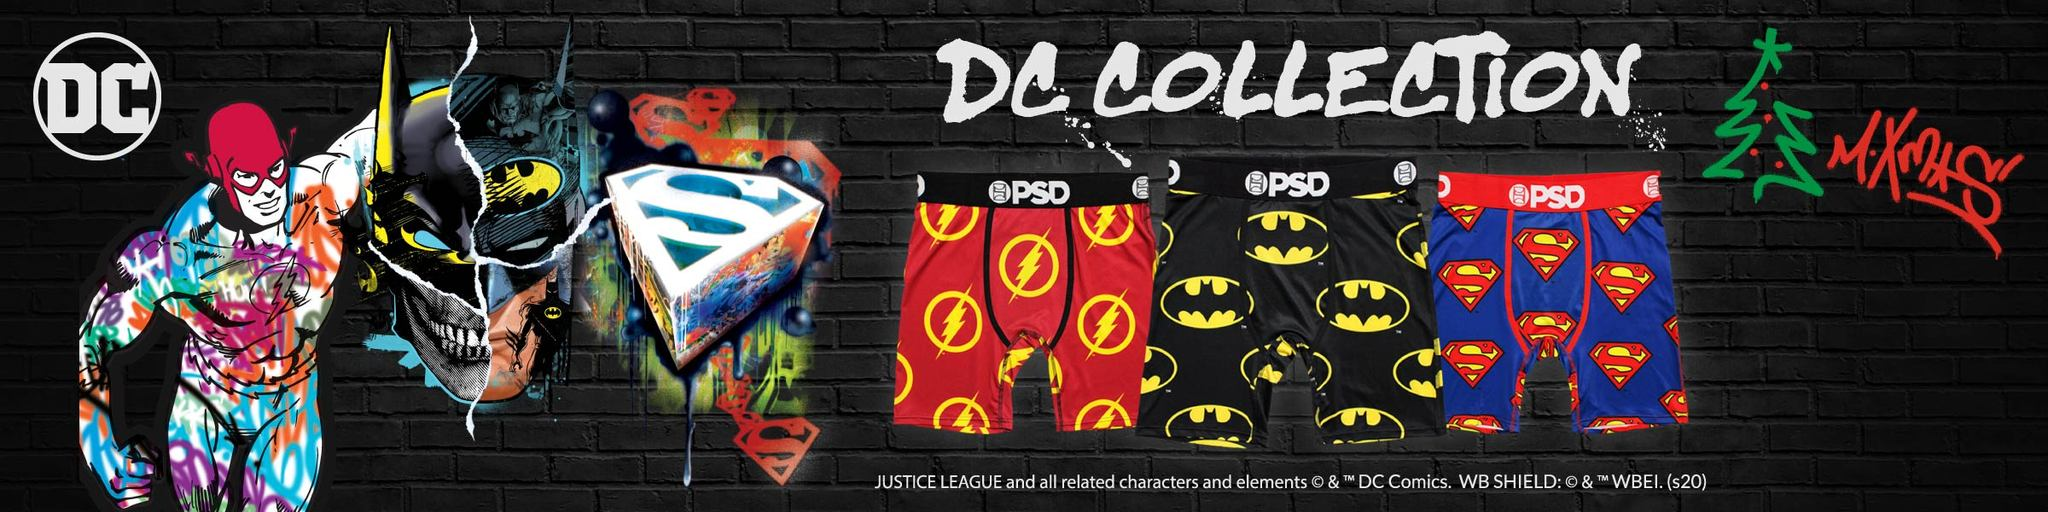 dc-collection_collection-banner_2048x